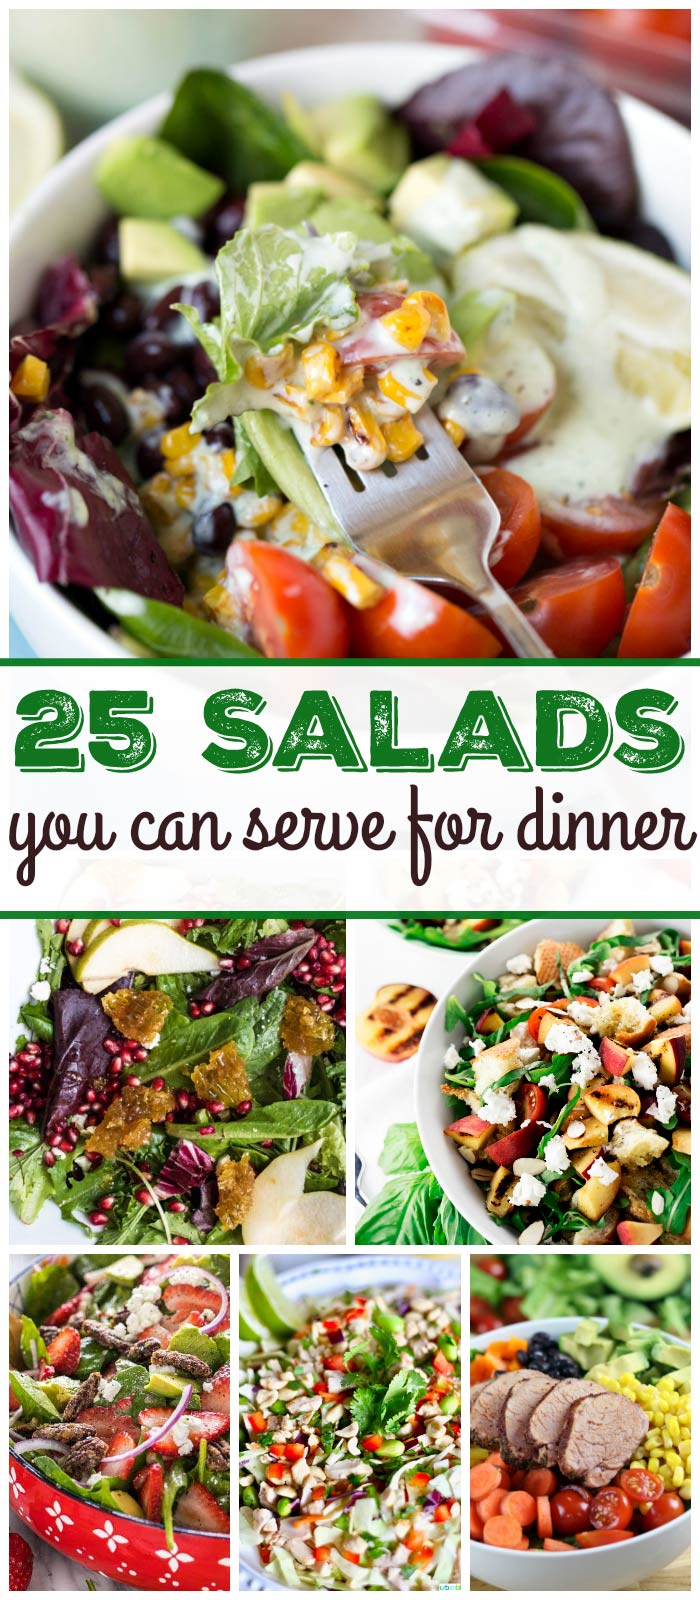 Wow your guests with these 25 salads for dinner that are quick and easy to make and super yummy!   Design Dazzle